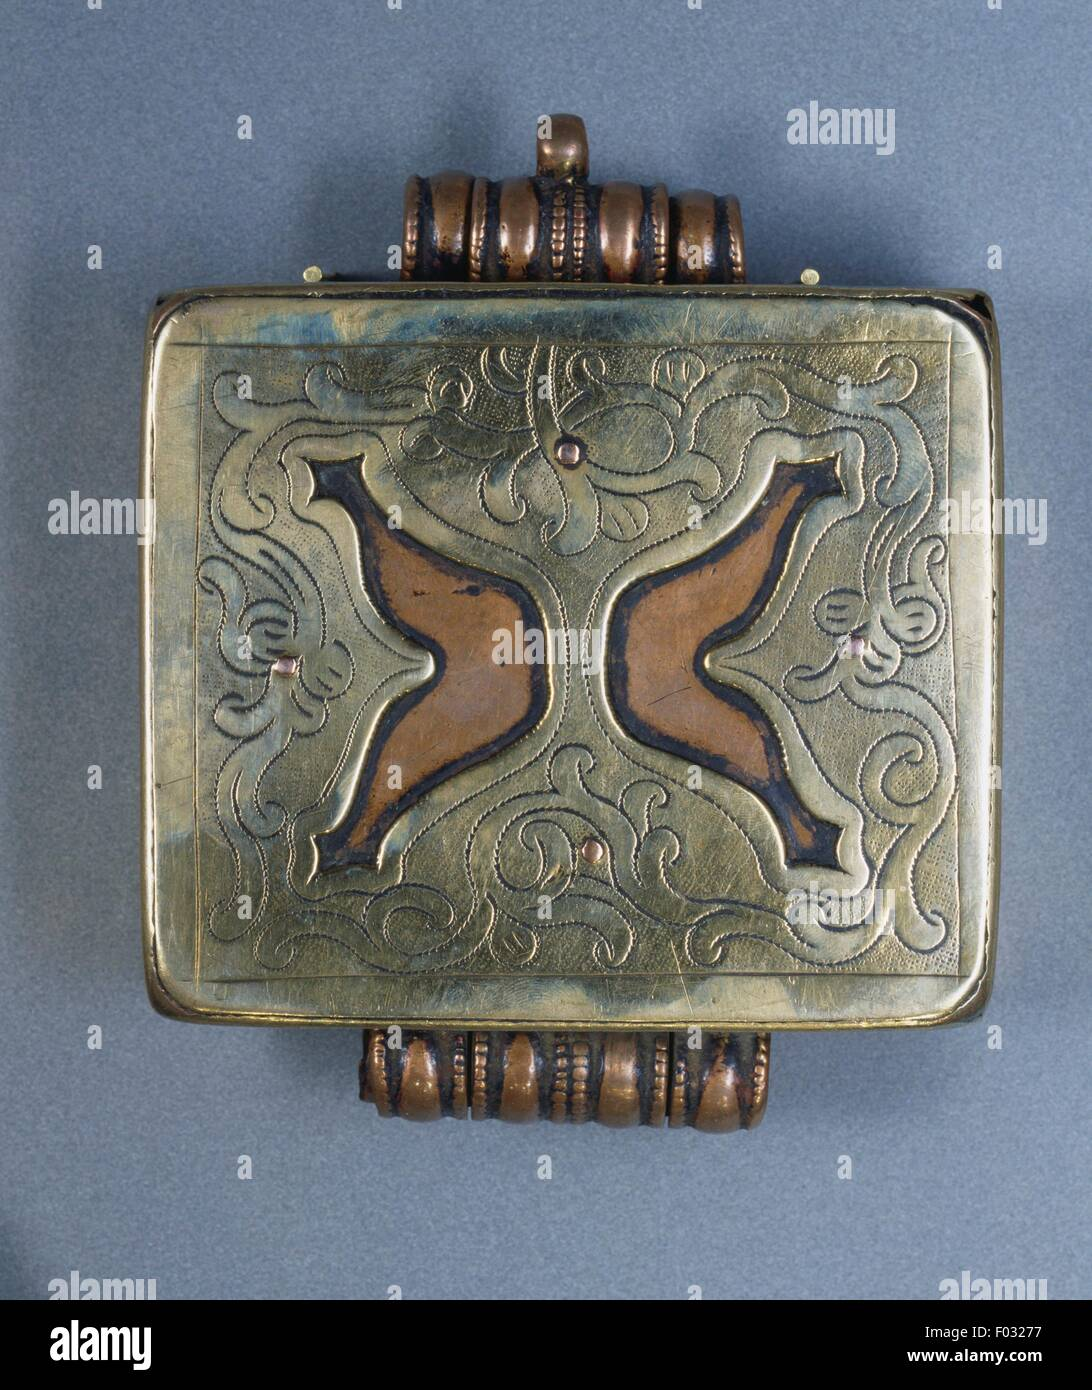 Reliquary pendant stock photos reliquary pendant stock images alamy ghau reliquary pendant in brass copper and bronze tibet stock image aloadofball Image collections